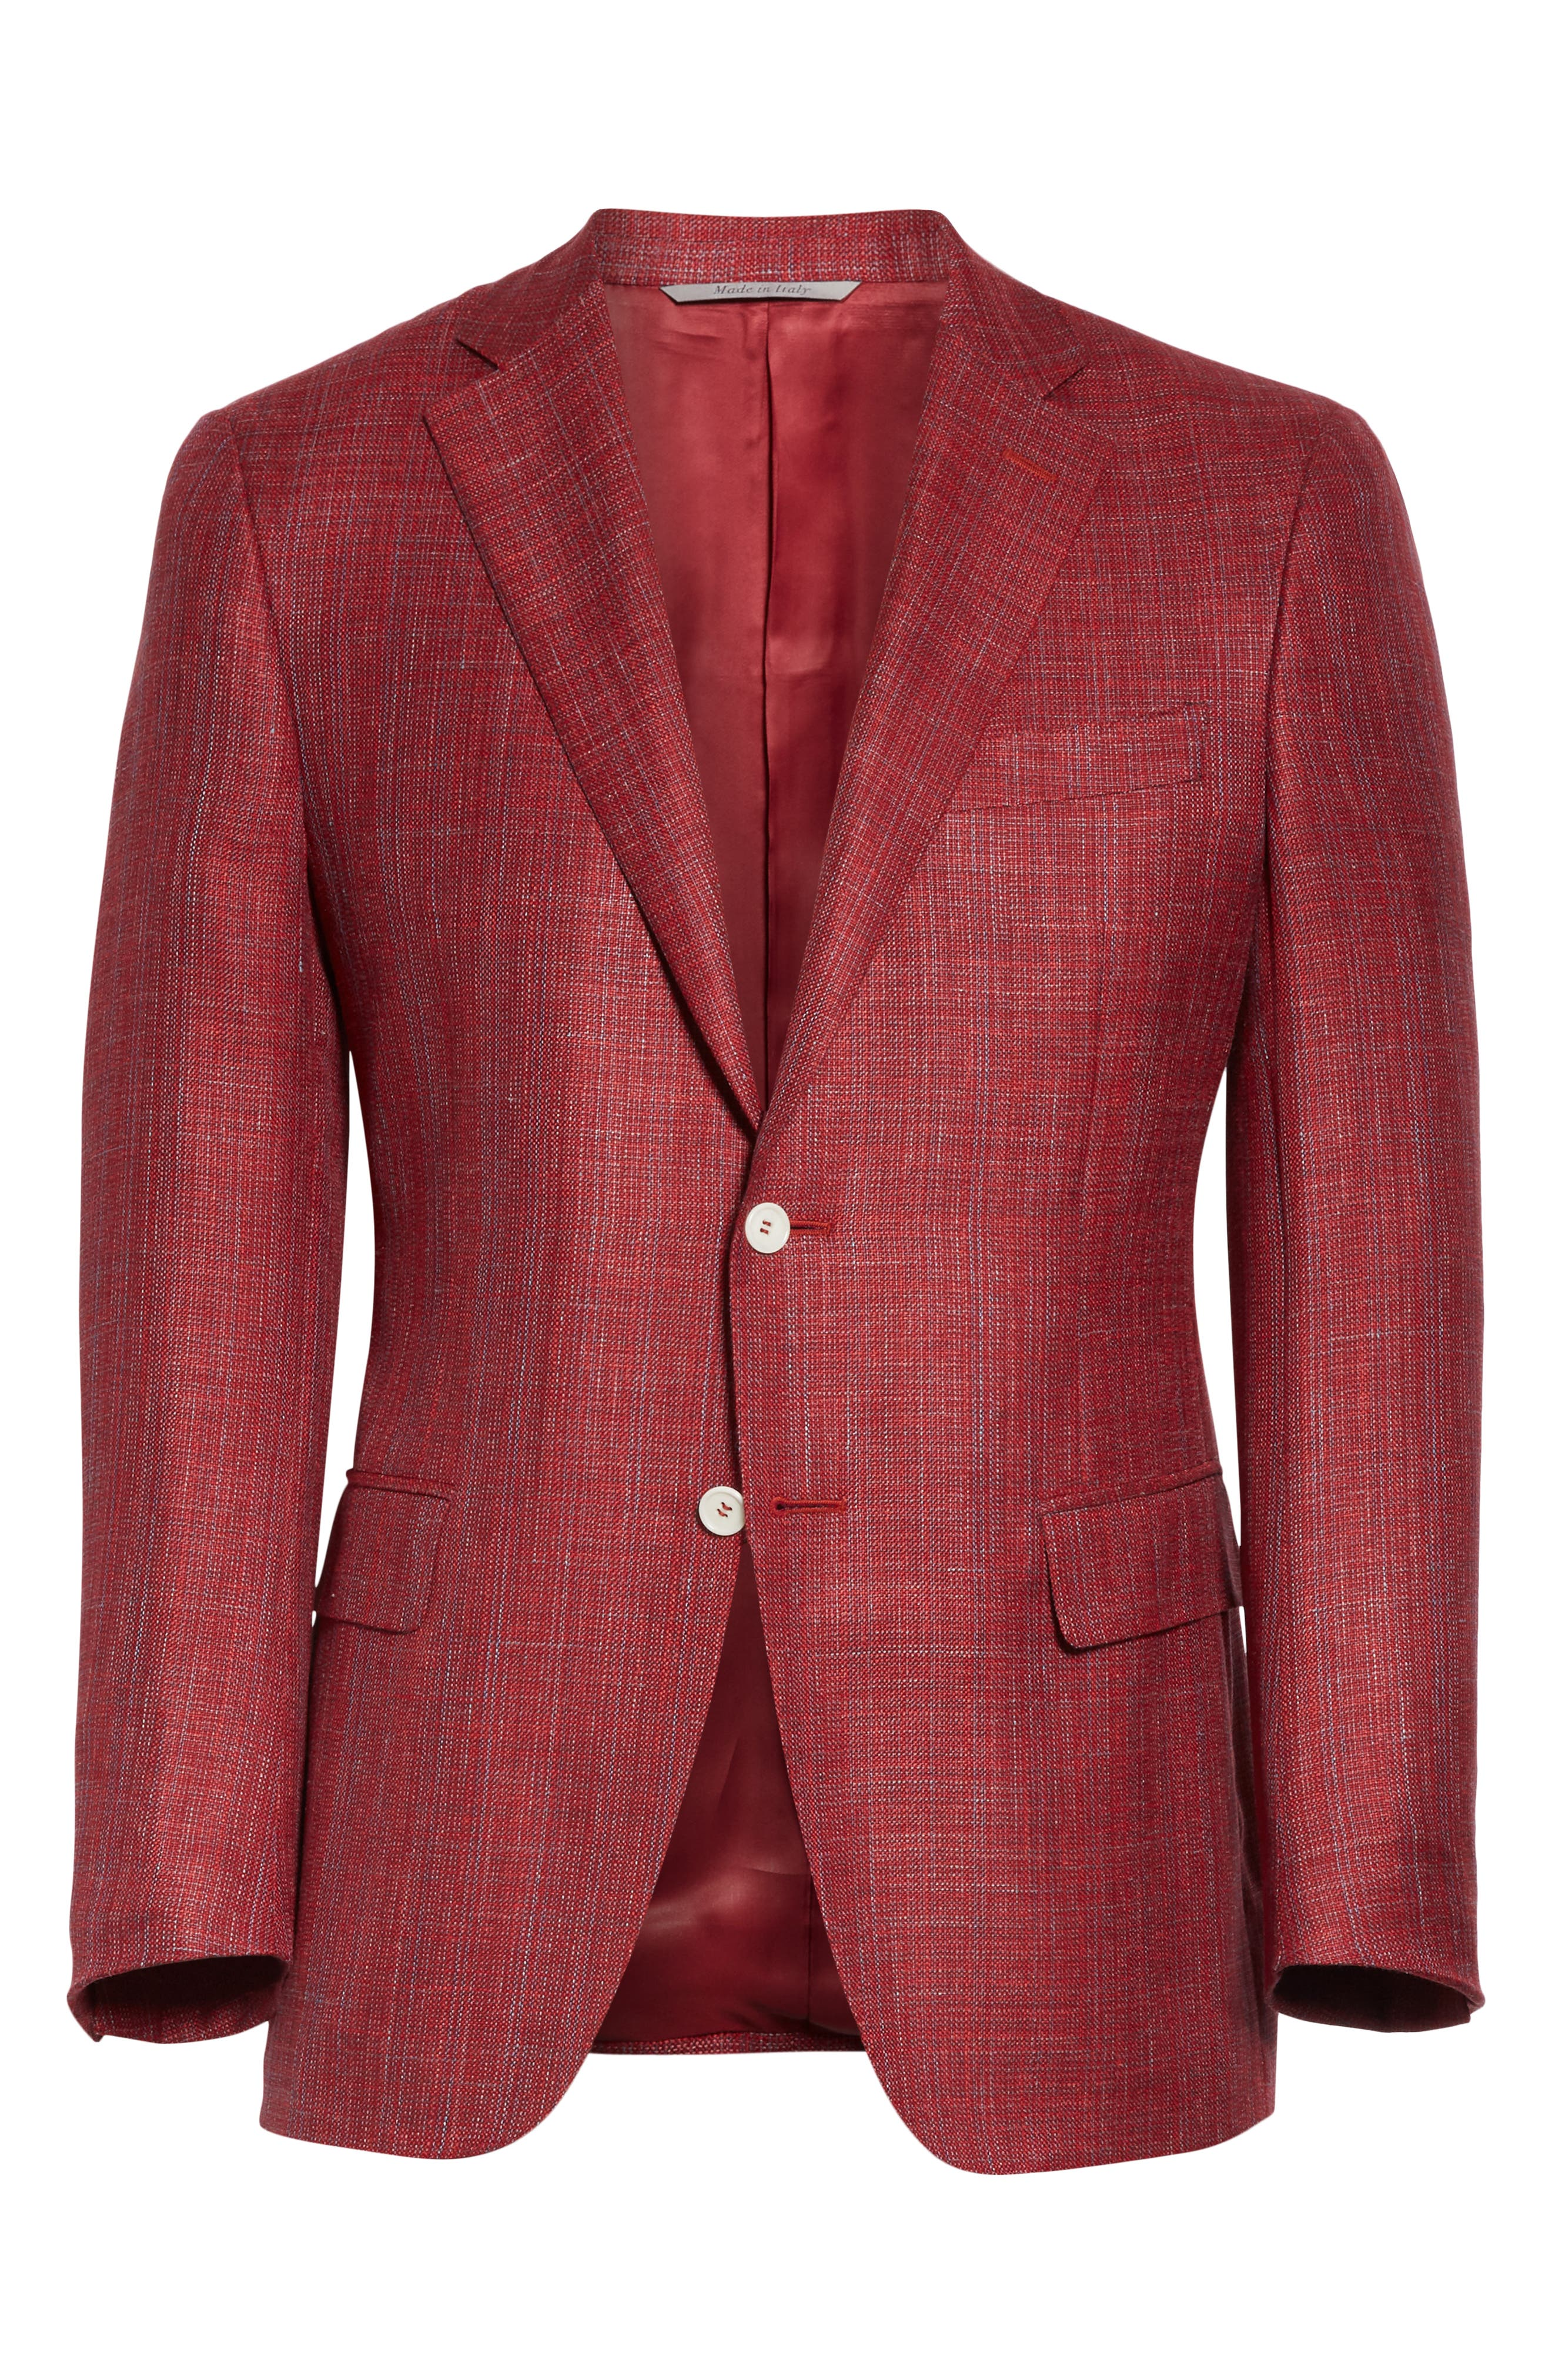 CANALI, Siena Classic Fit Wool, Silk & Linen Blend Sport Coat, Alternate thumbnail 5, color, RED